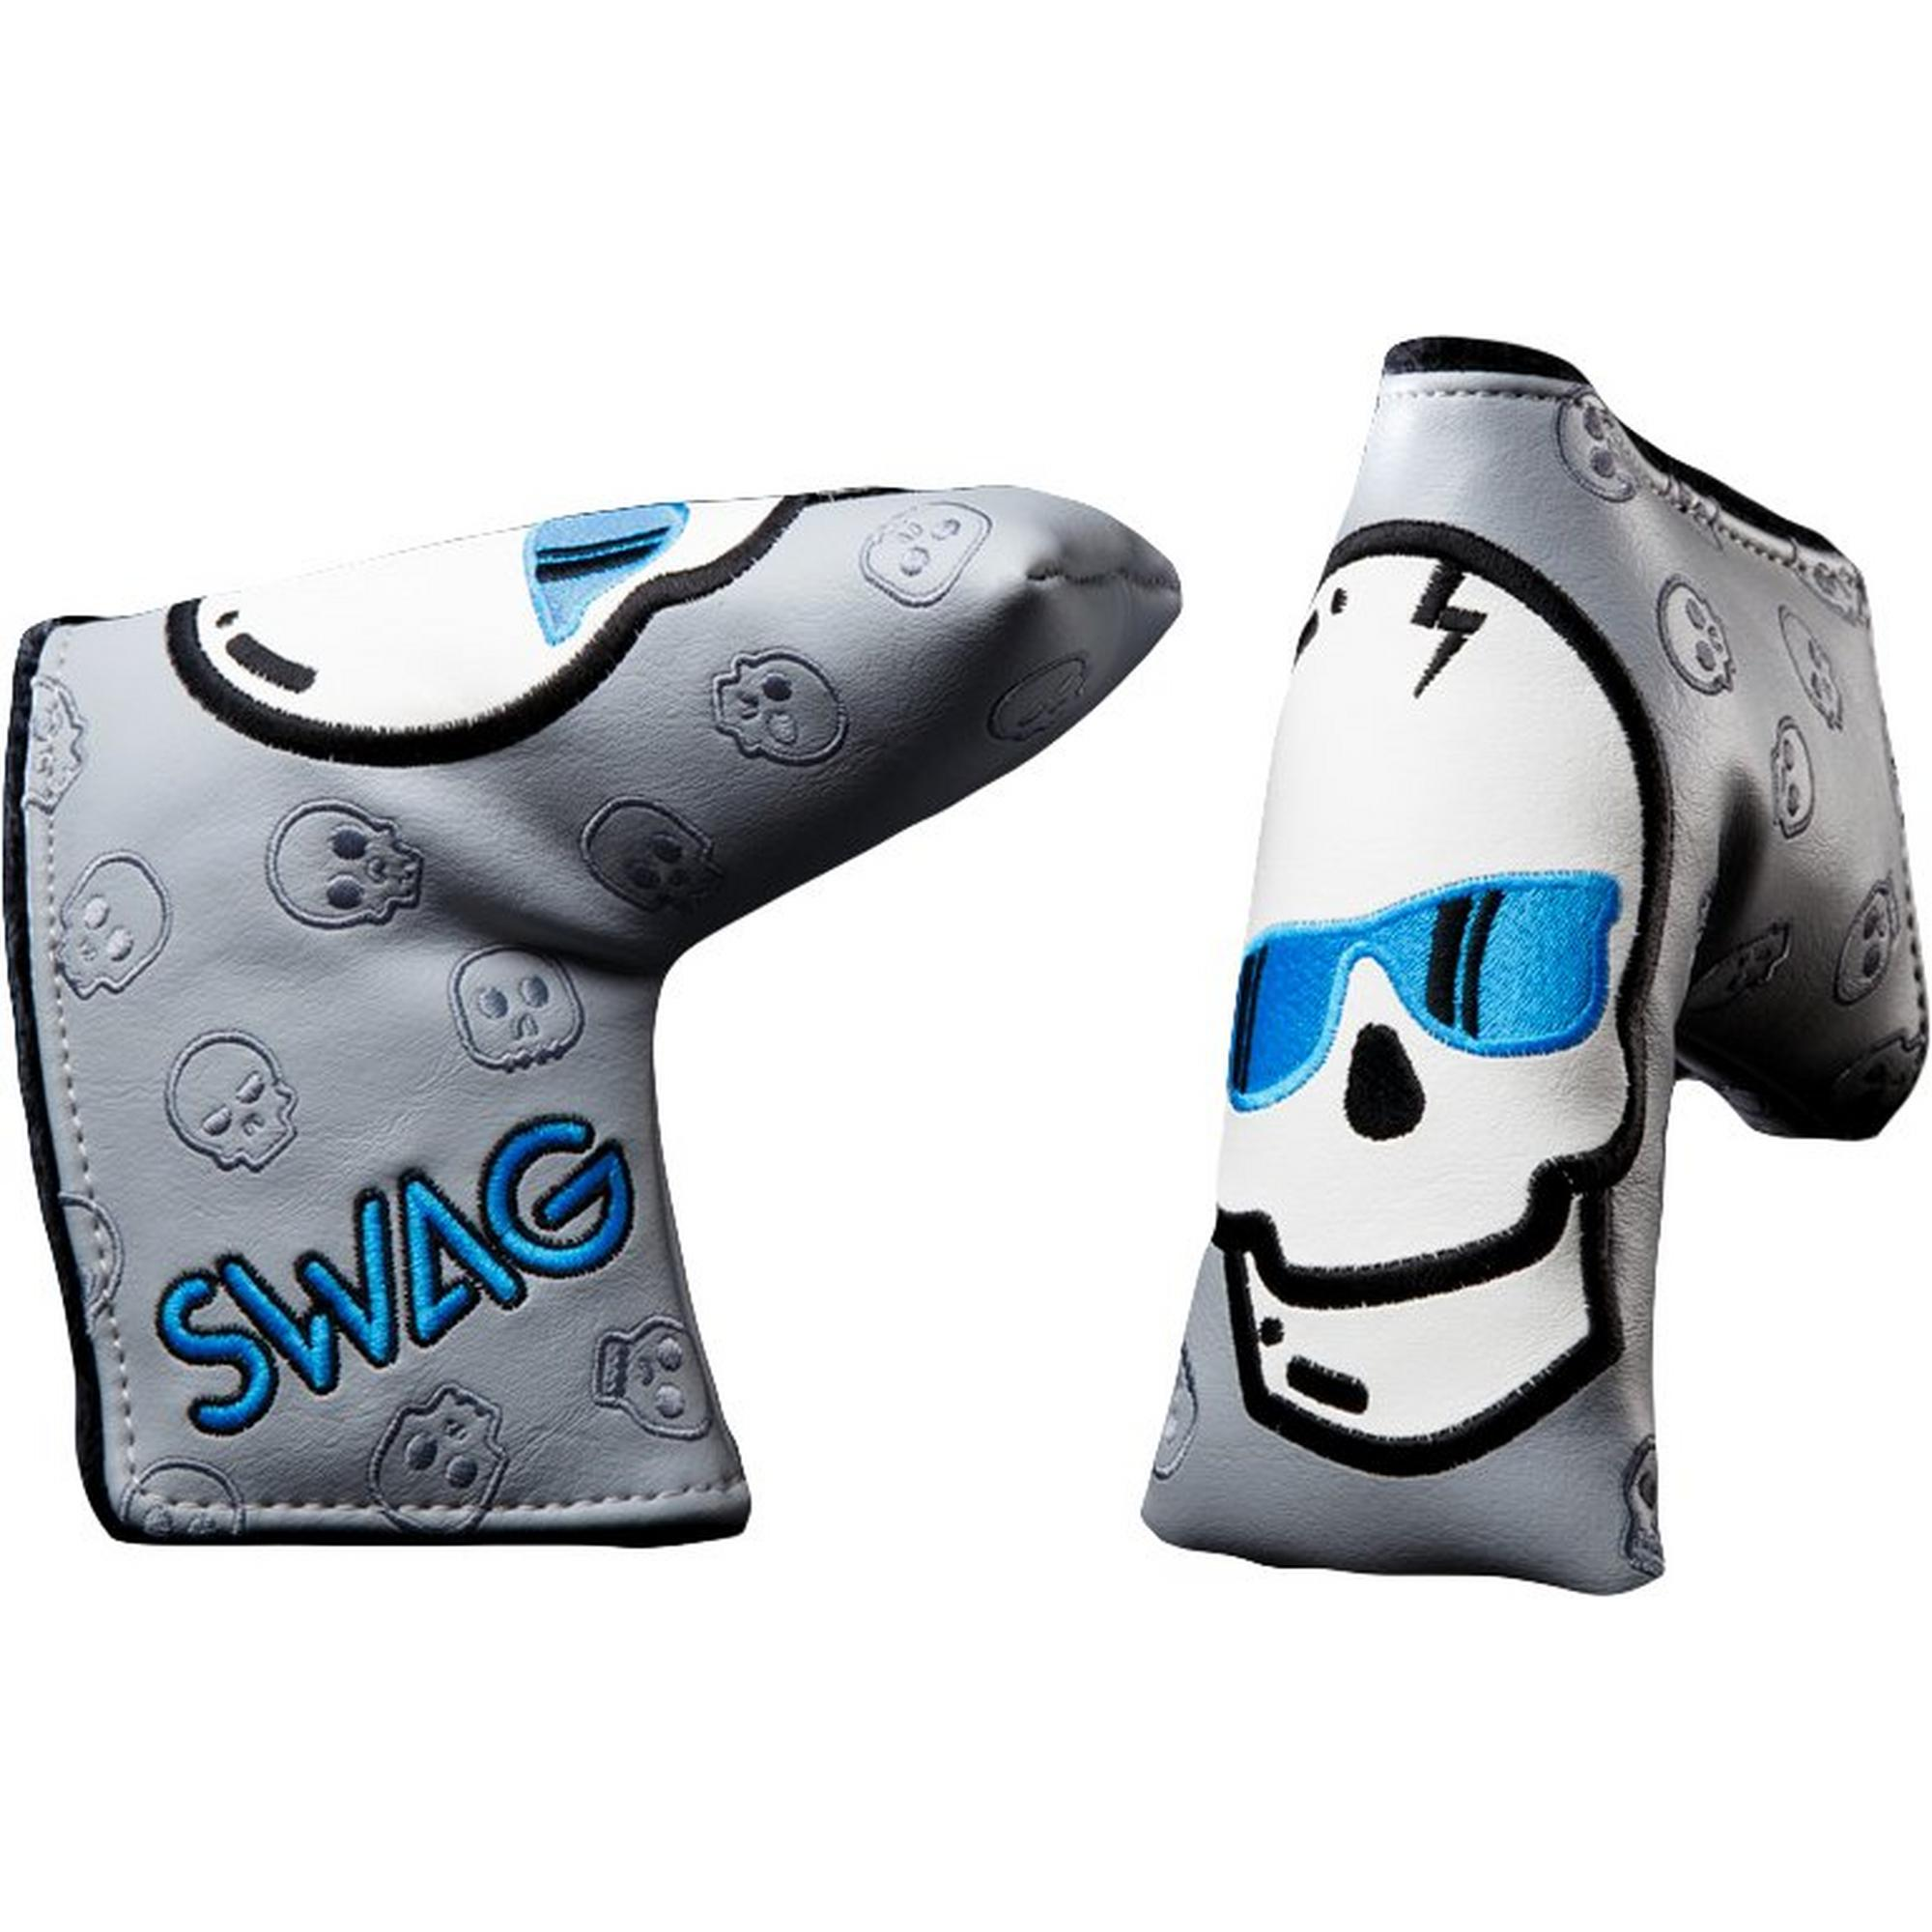 Blue Skull Putter Headcover